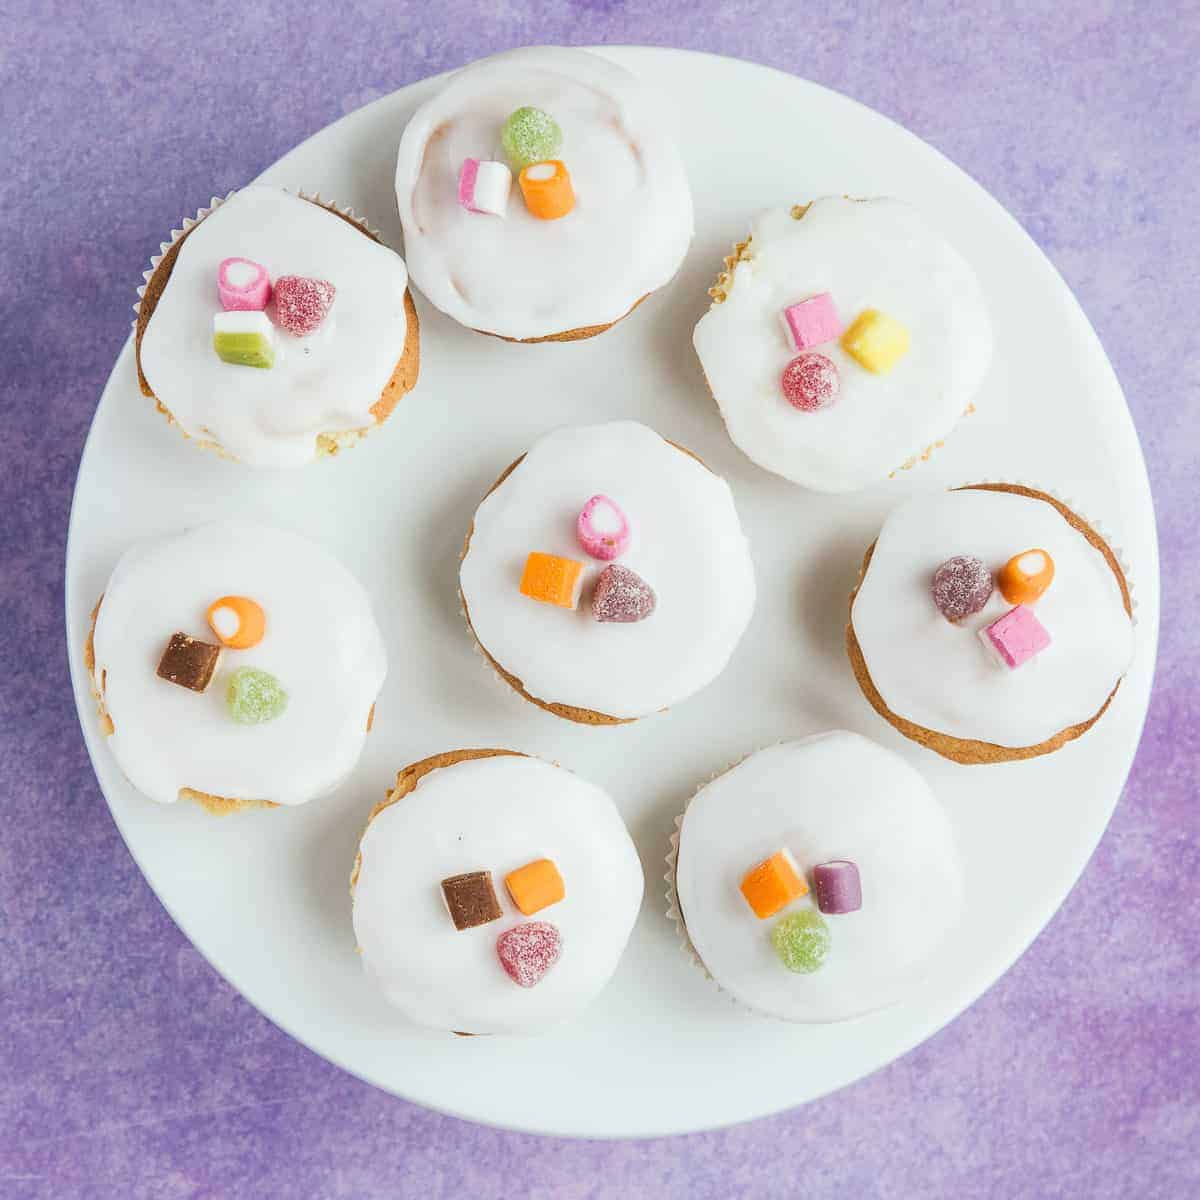 A white plate with 8 fairy cakes on top.